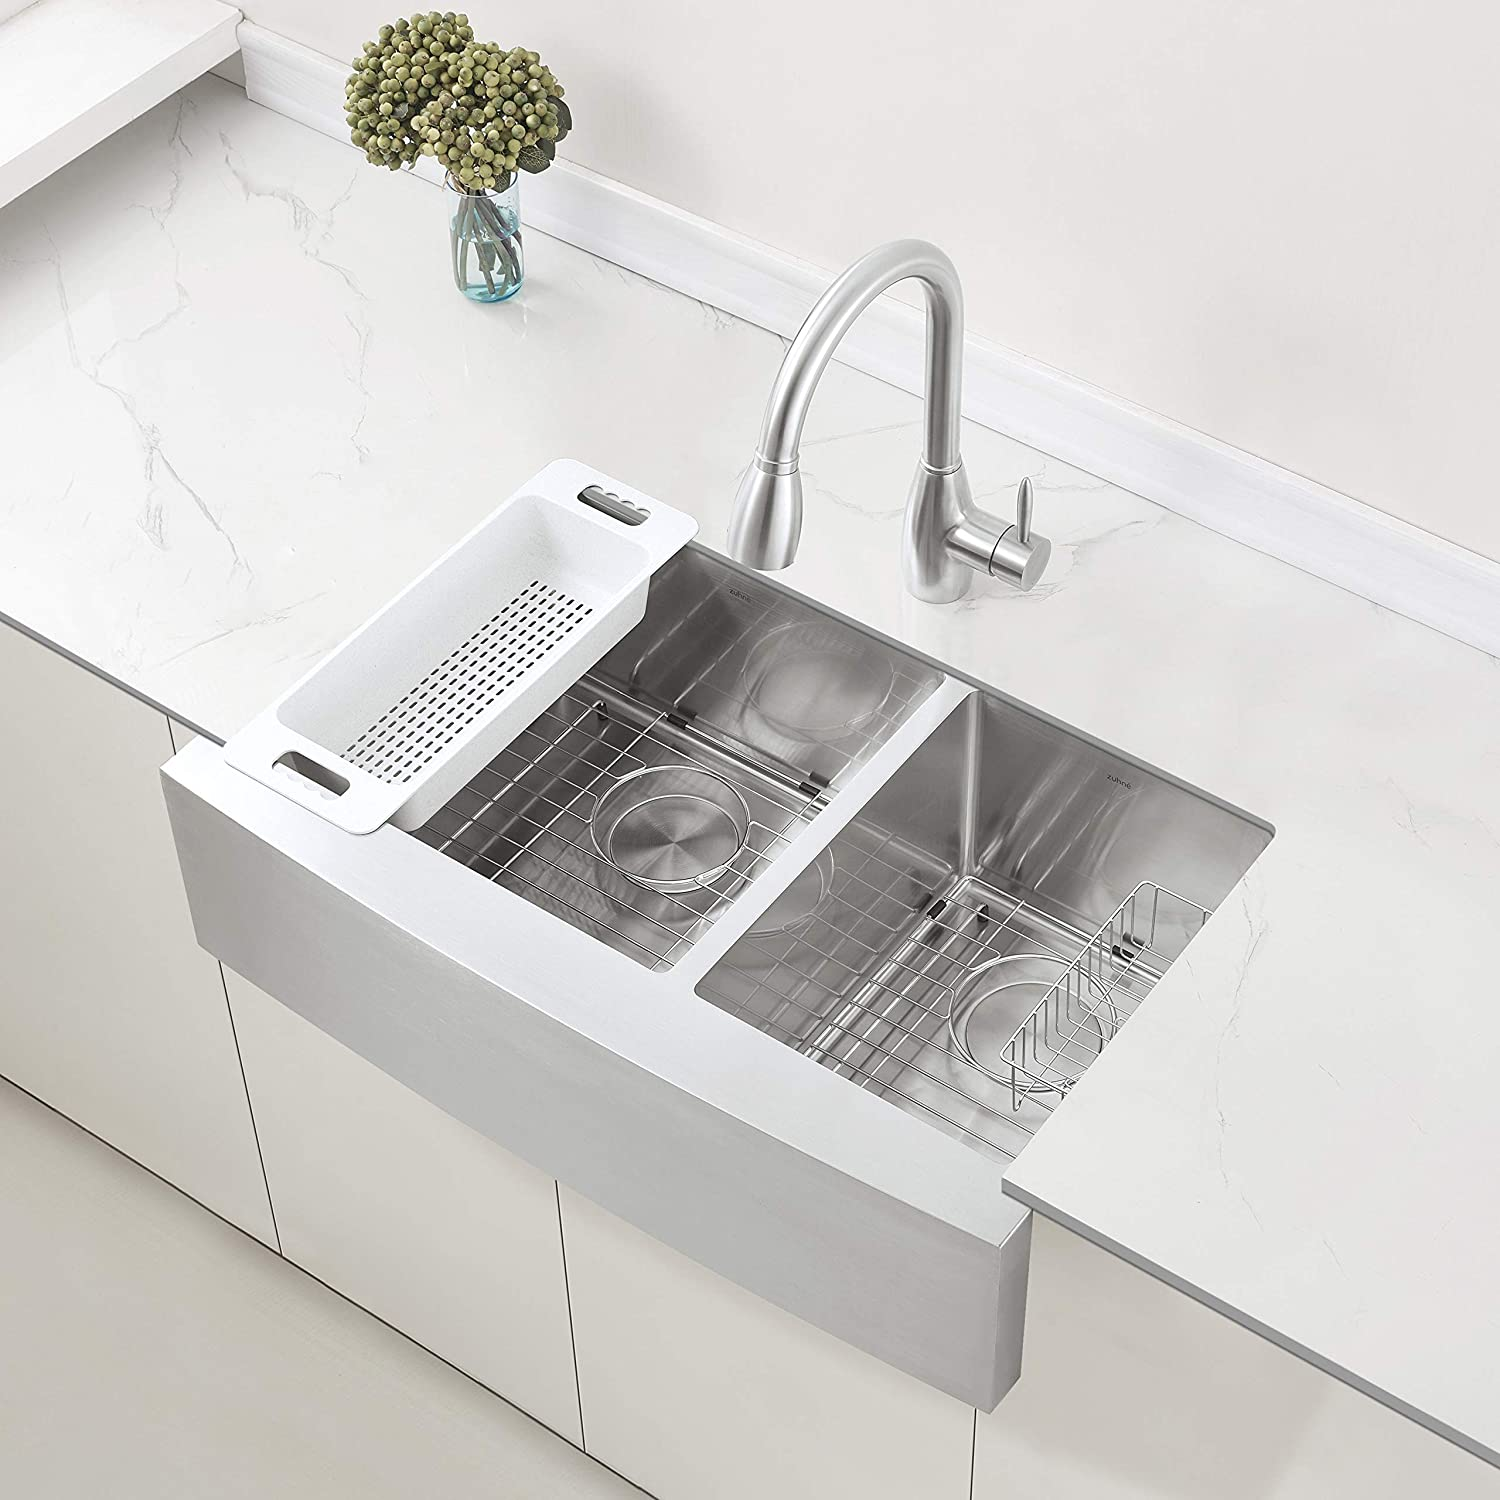 best stainless steel kitchen sinks: ZUHNE 33-Inch Farmhouse Apron Front 60/40 Double Bowl